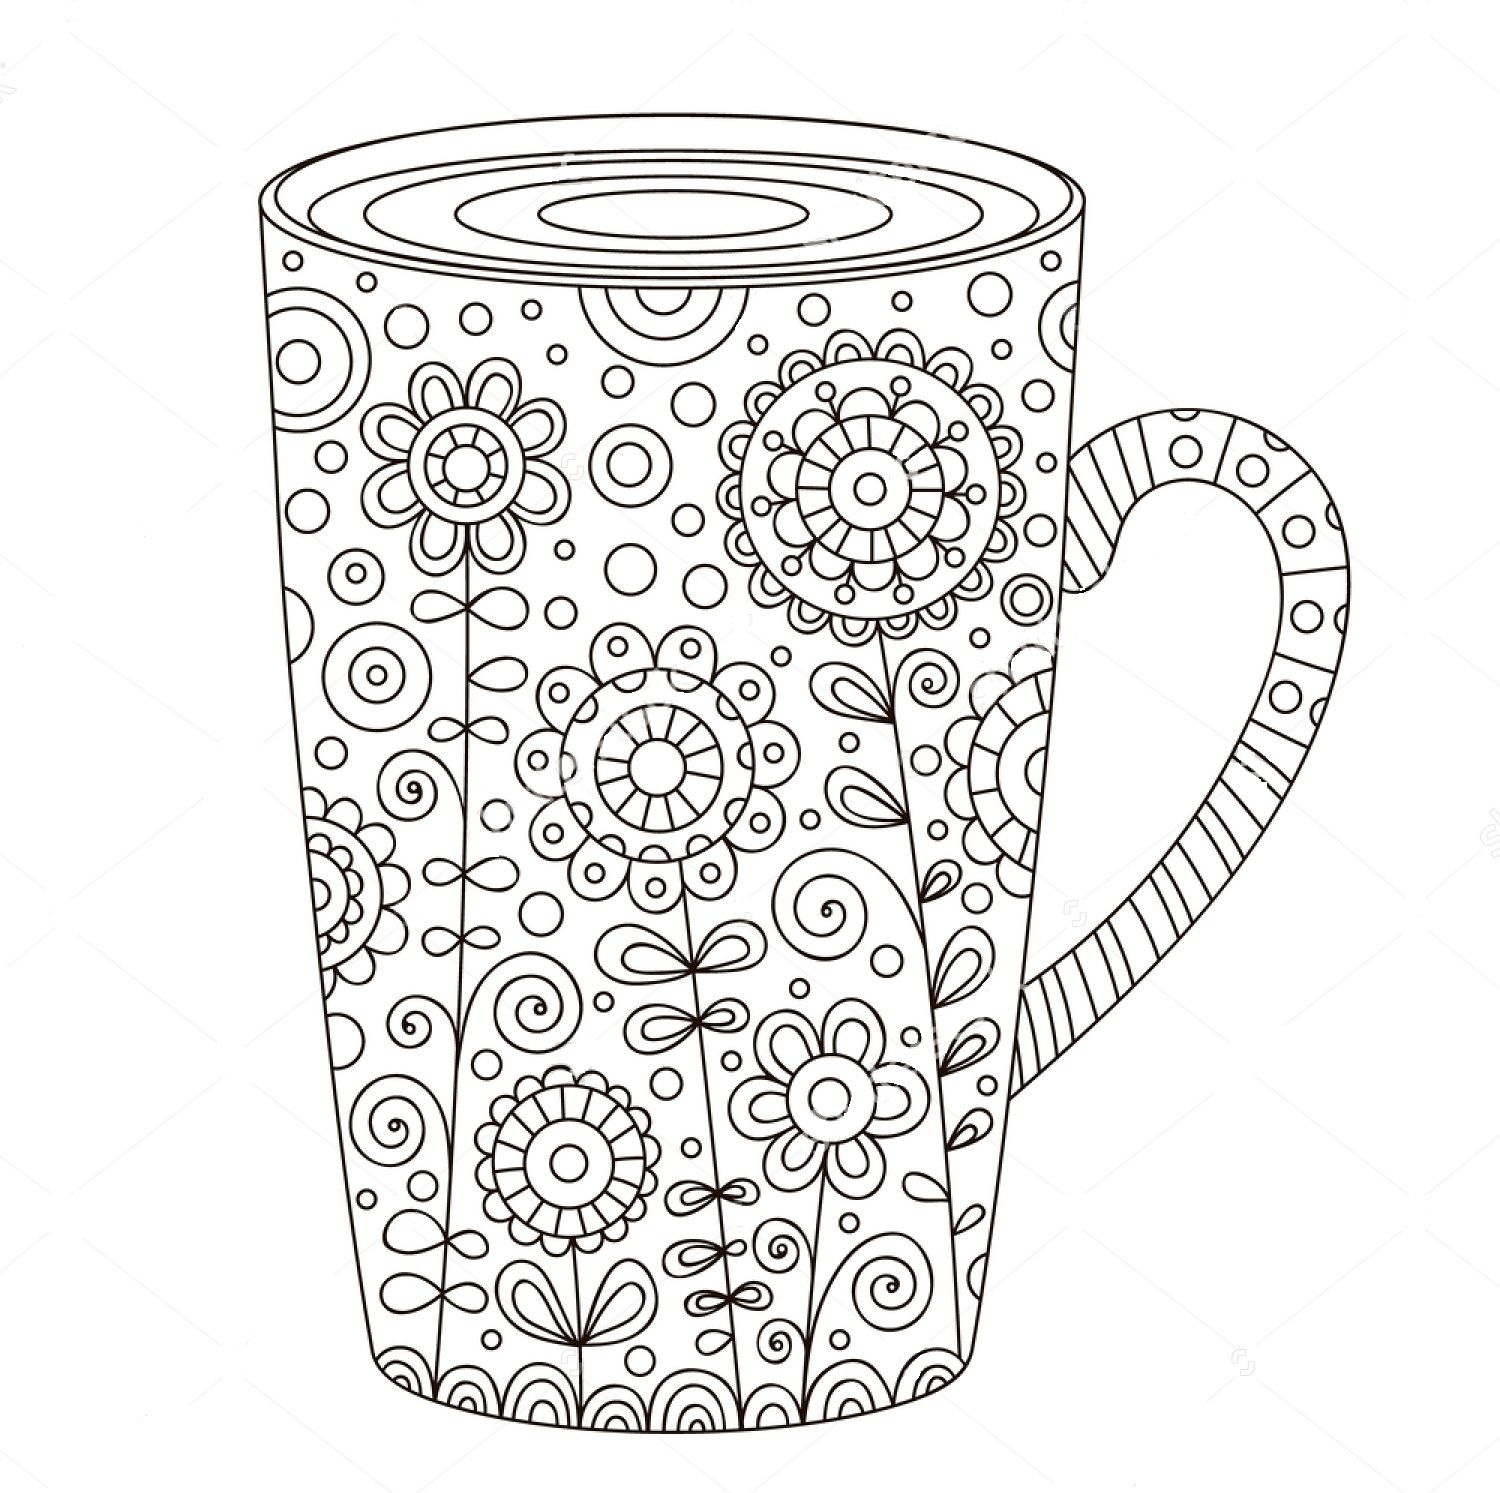 Mug zentangle coloring page Adult coloring pages